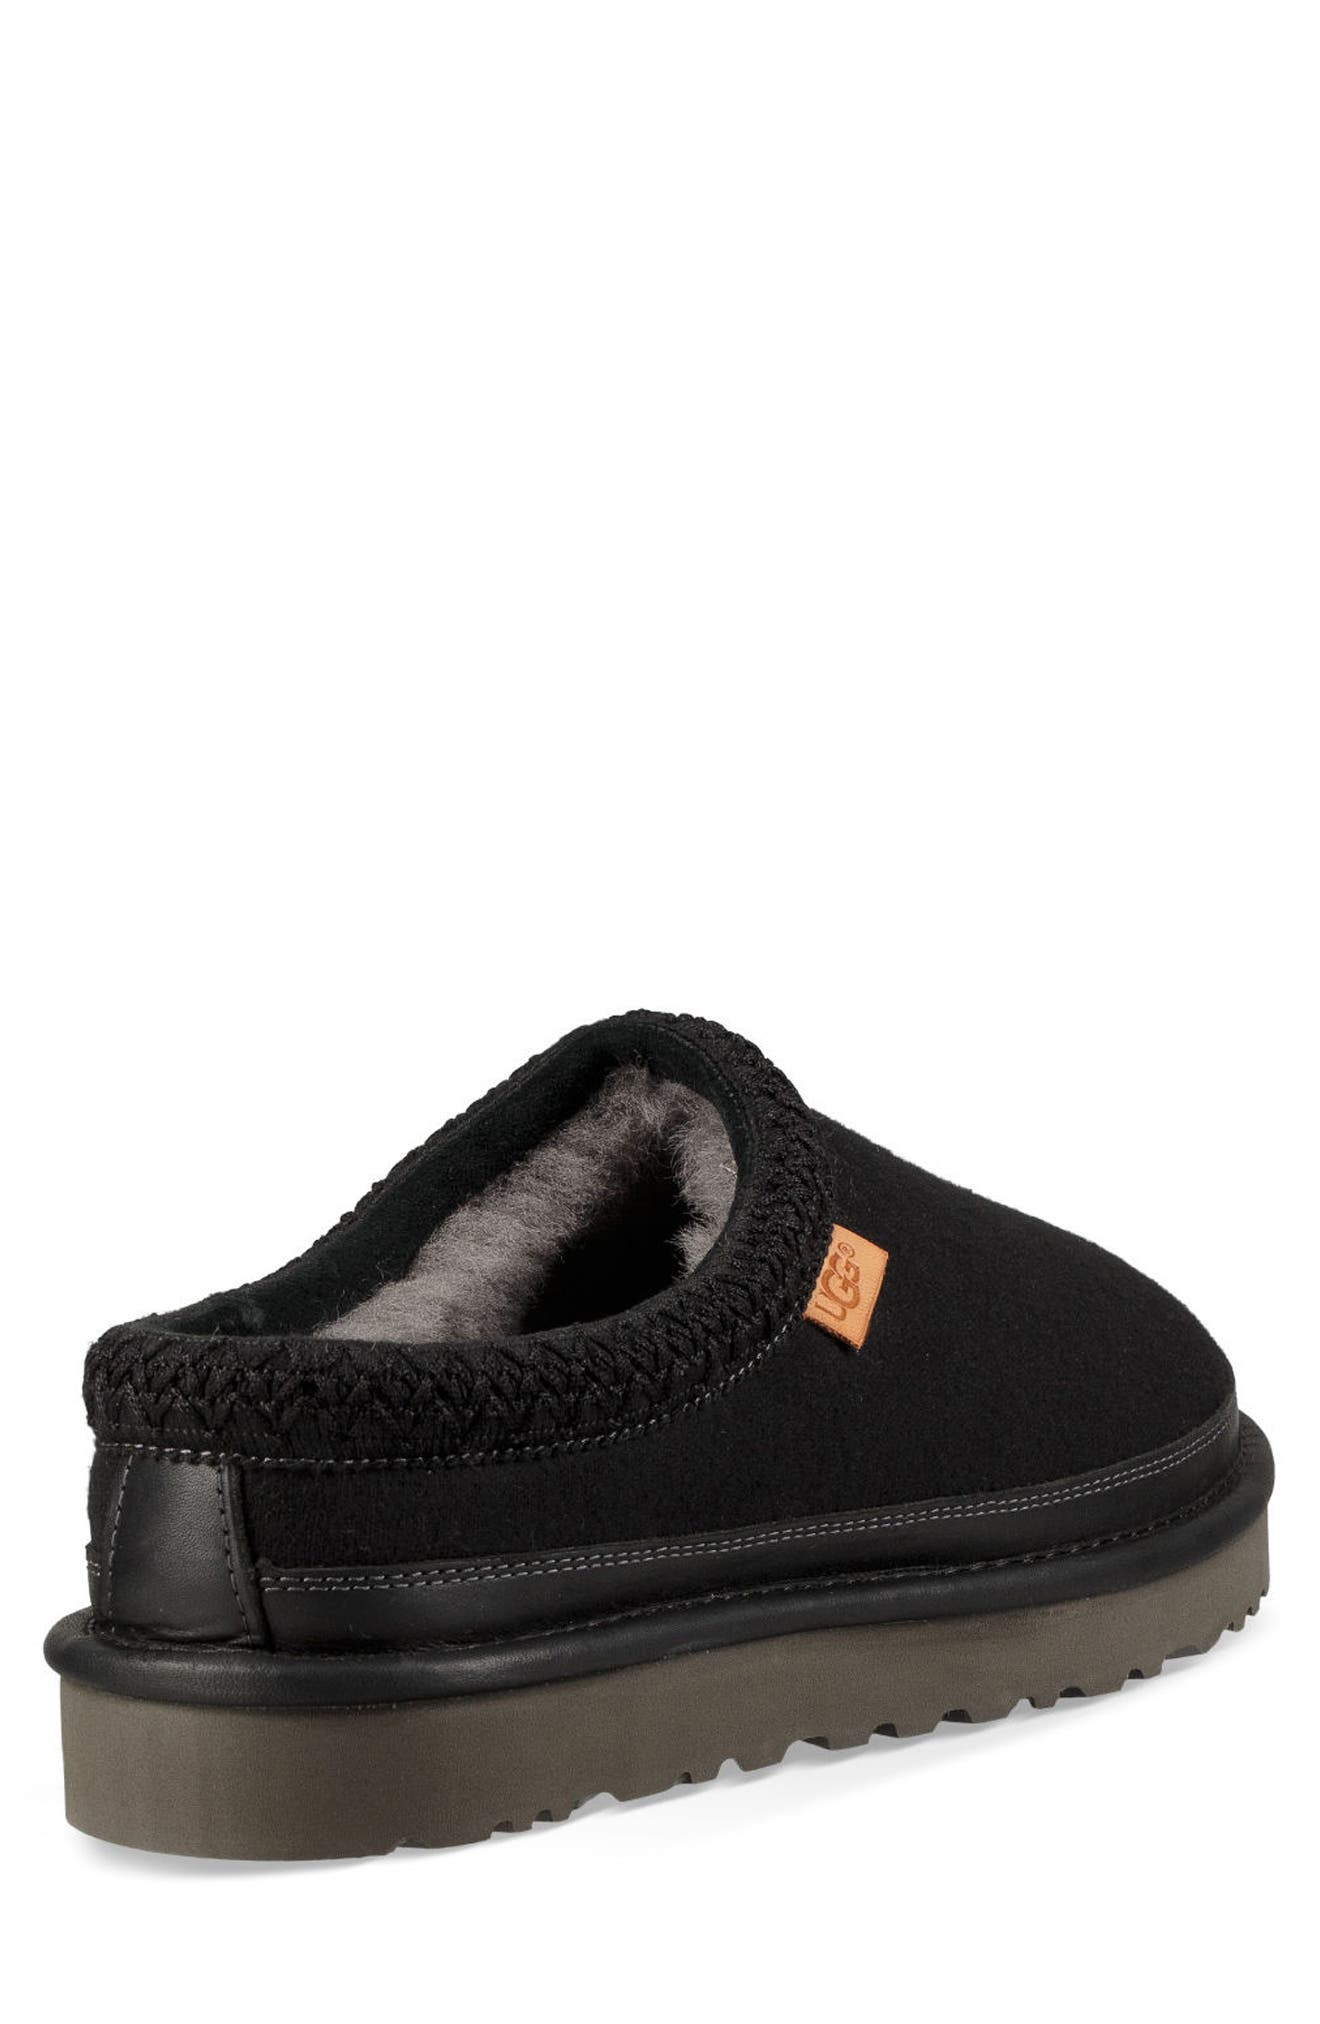 'Tasman' Slipper,                             Alternate thumbnail 2, color,                             BLACK/ BLACK